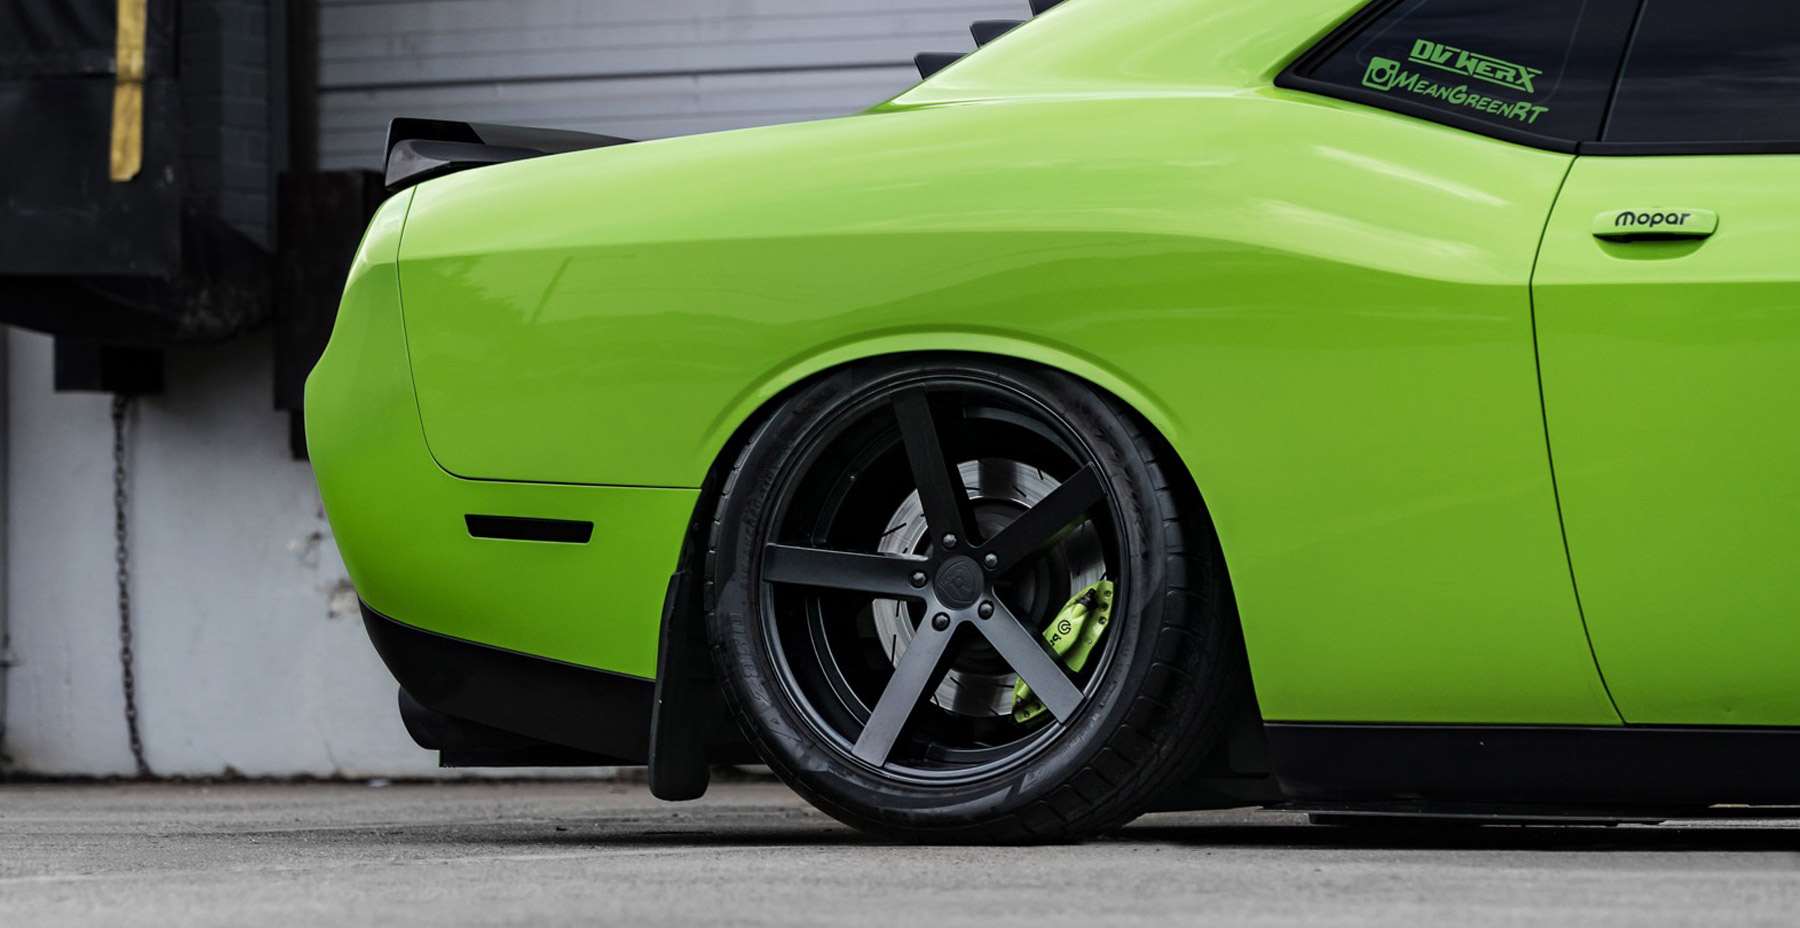 Green Dodge Challenger x Rohana RC22 Wheels (Finished in Matte Black)